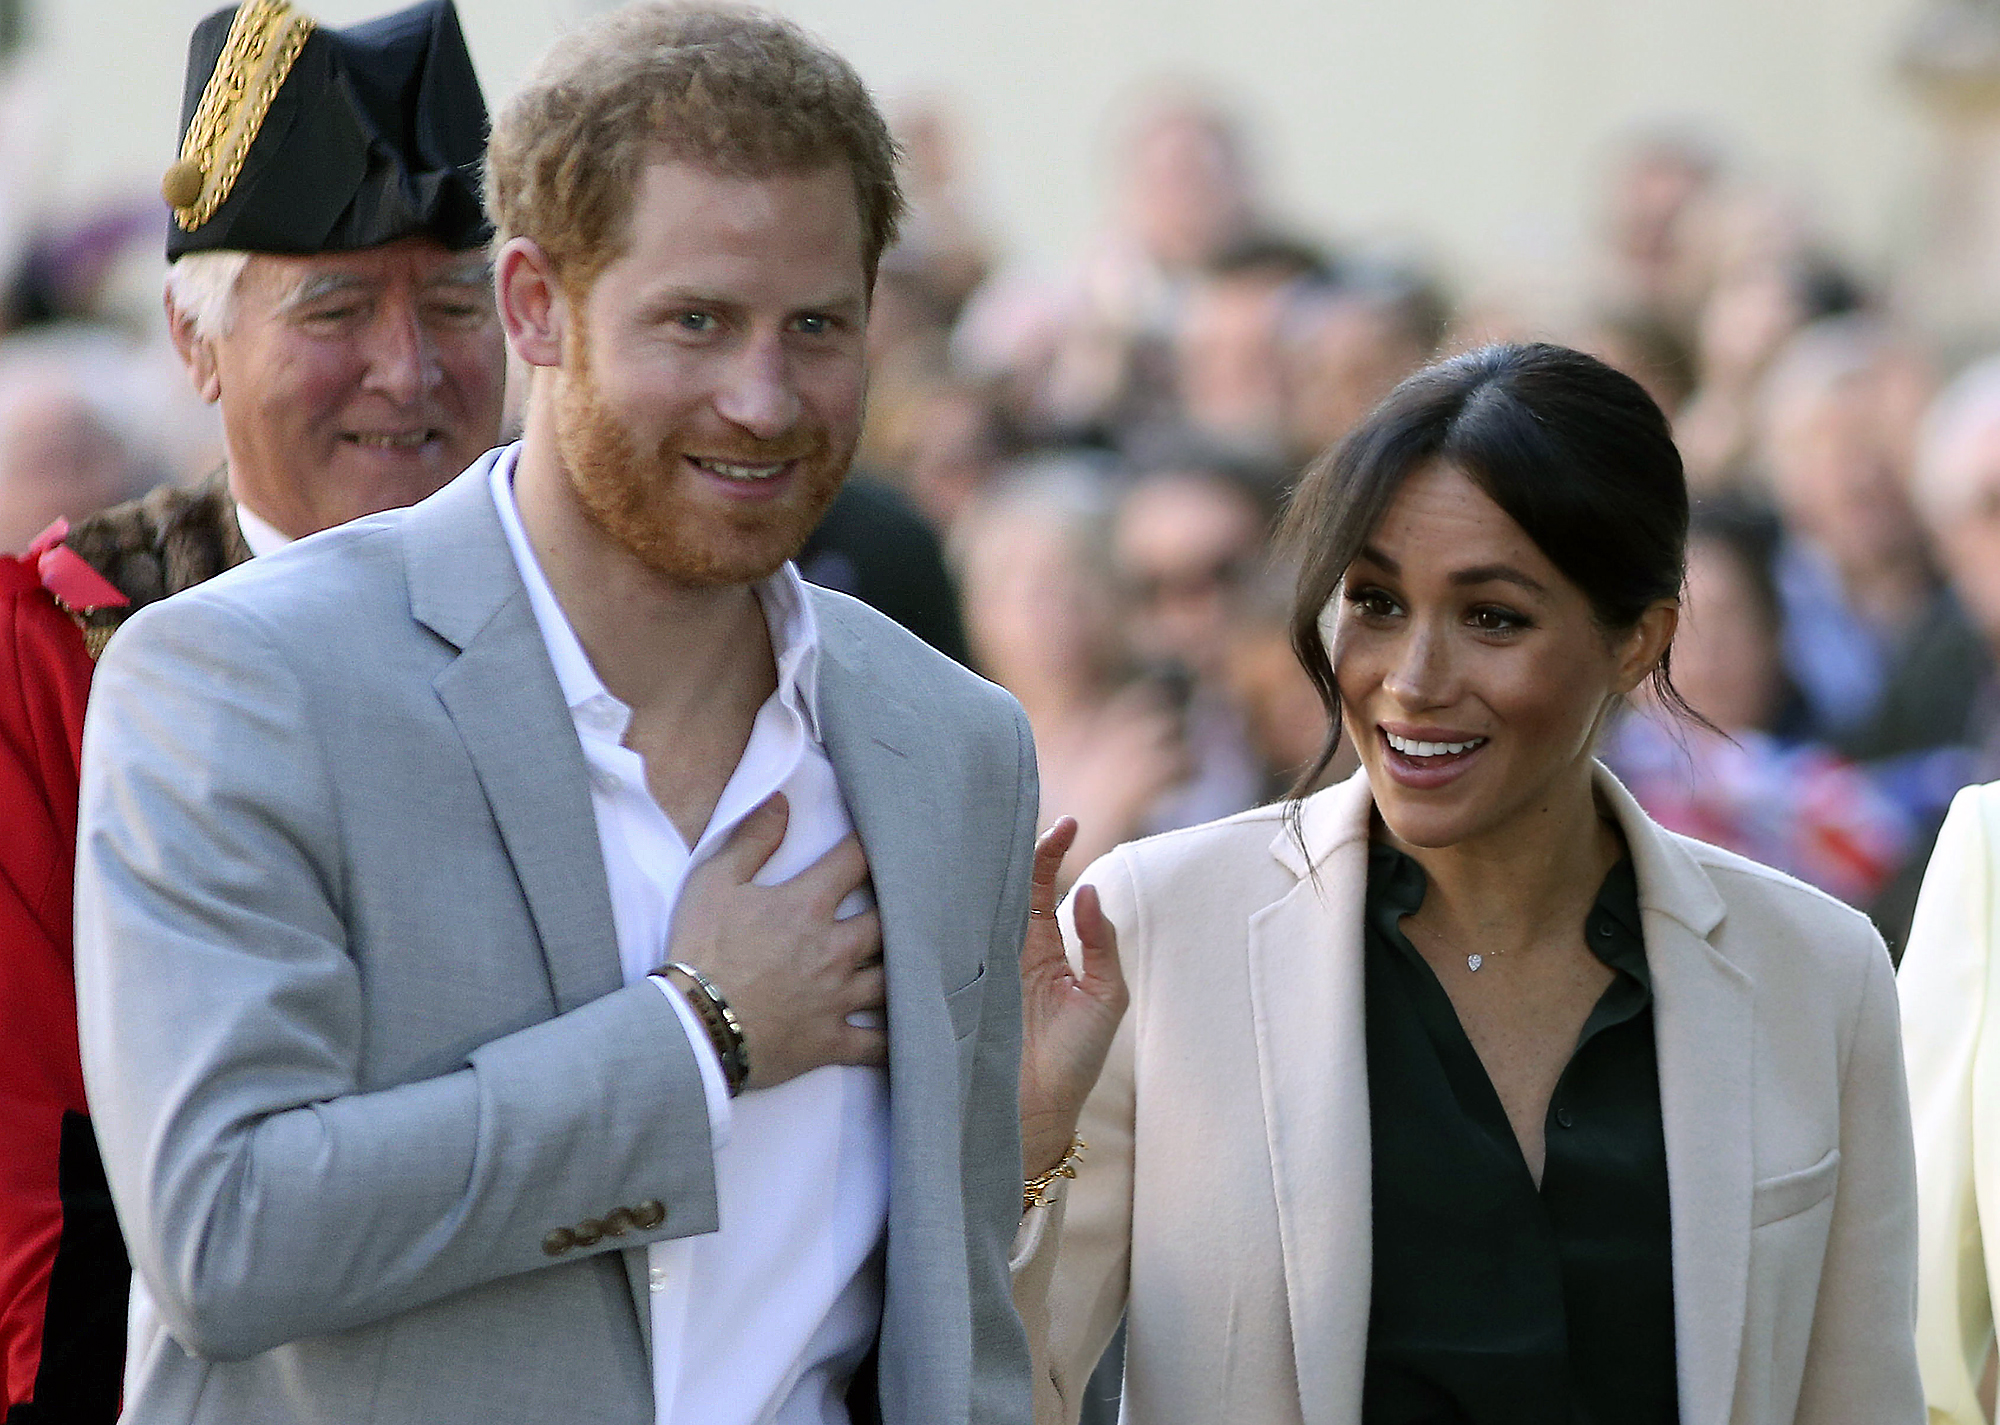 Will Meghan Markle and Prince Harry's Baby Be a U.S. Citizen? harry-meghan-2-2000